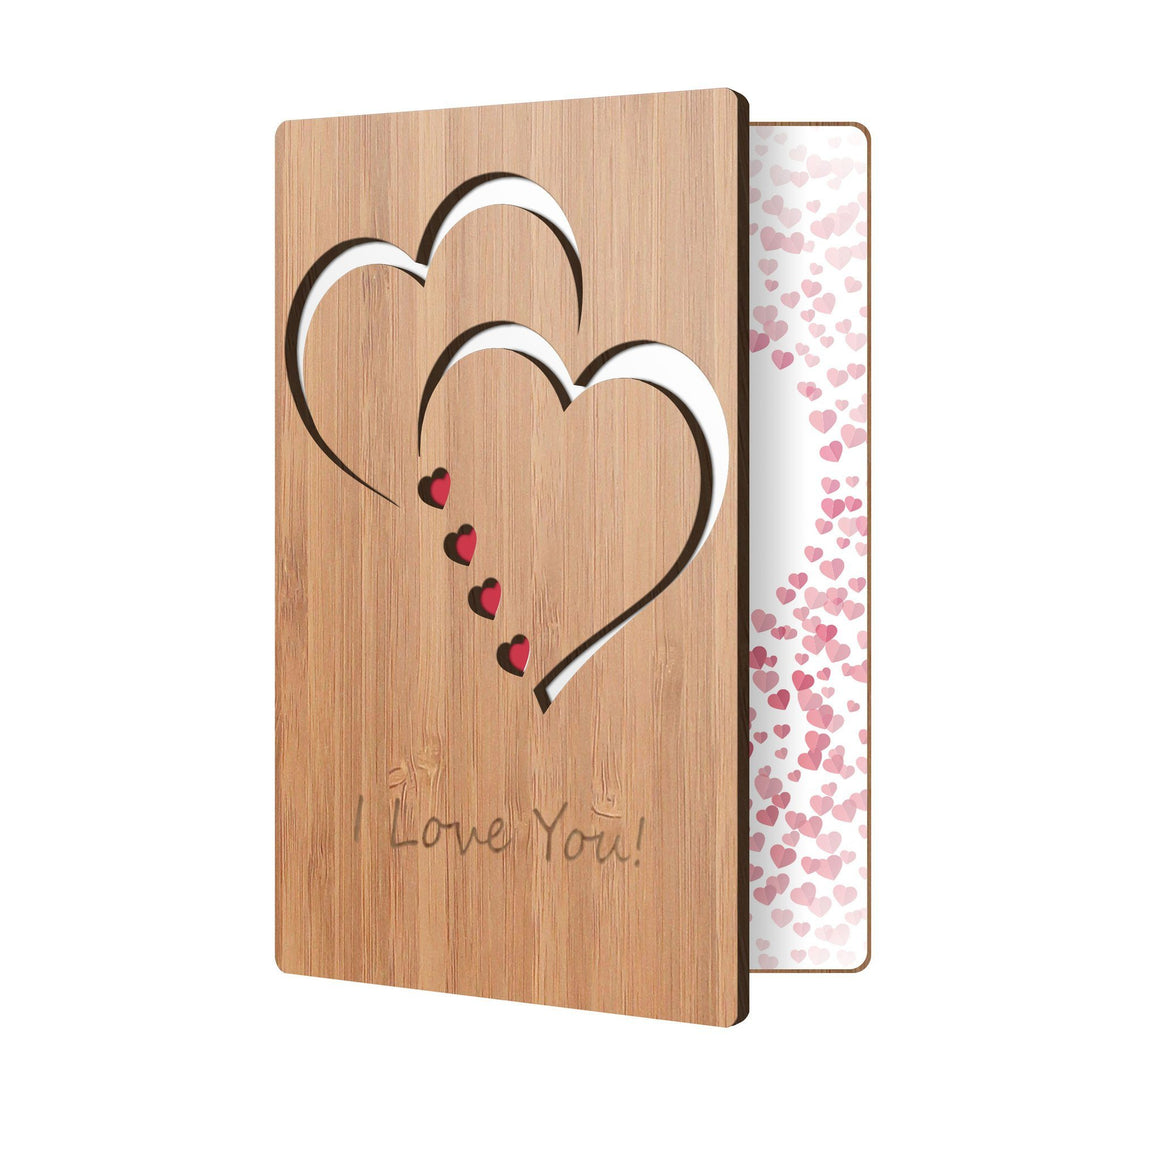 Bamboo Wood Greeting Card Classic Hearts Love Card Main